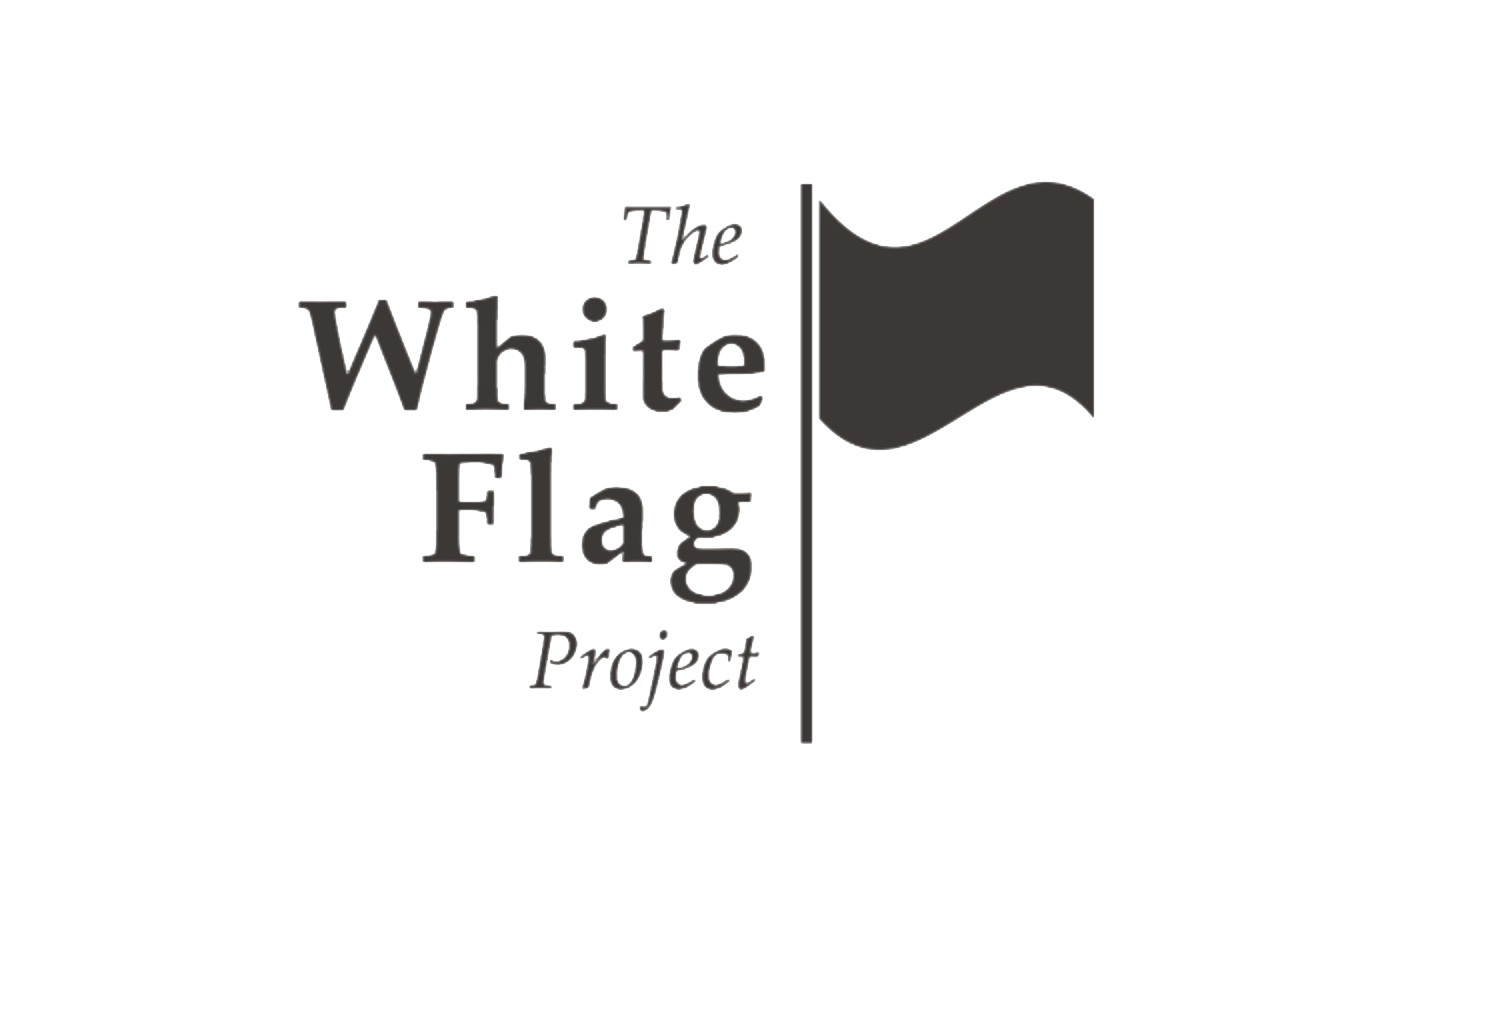 The White Flag Project